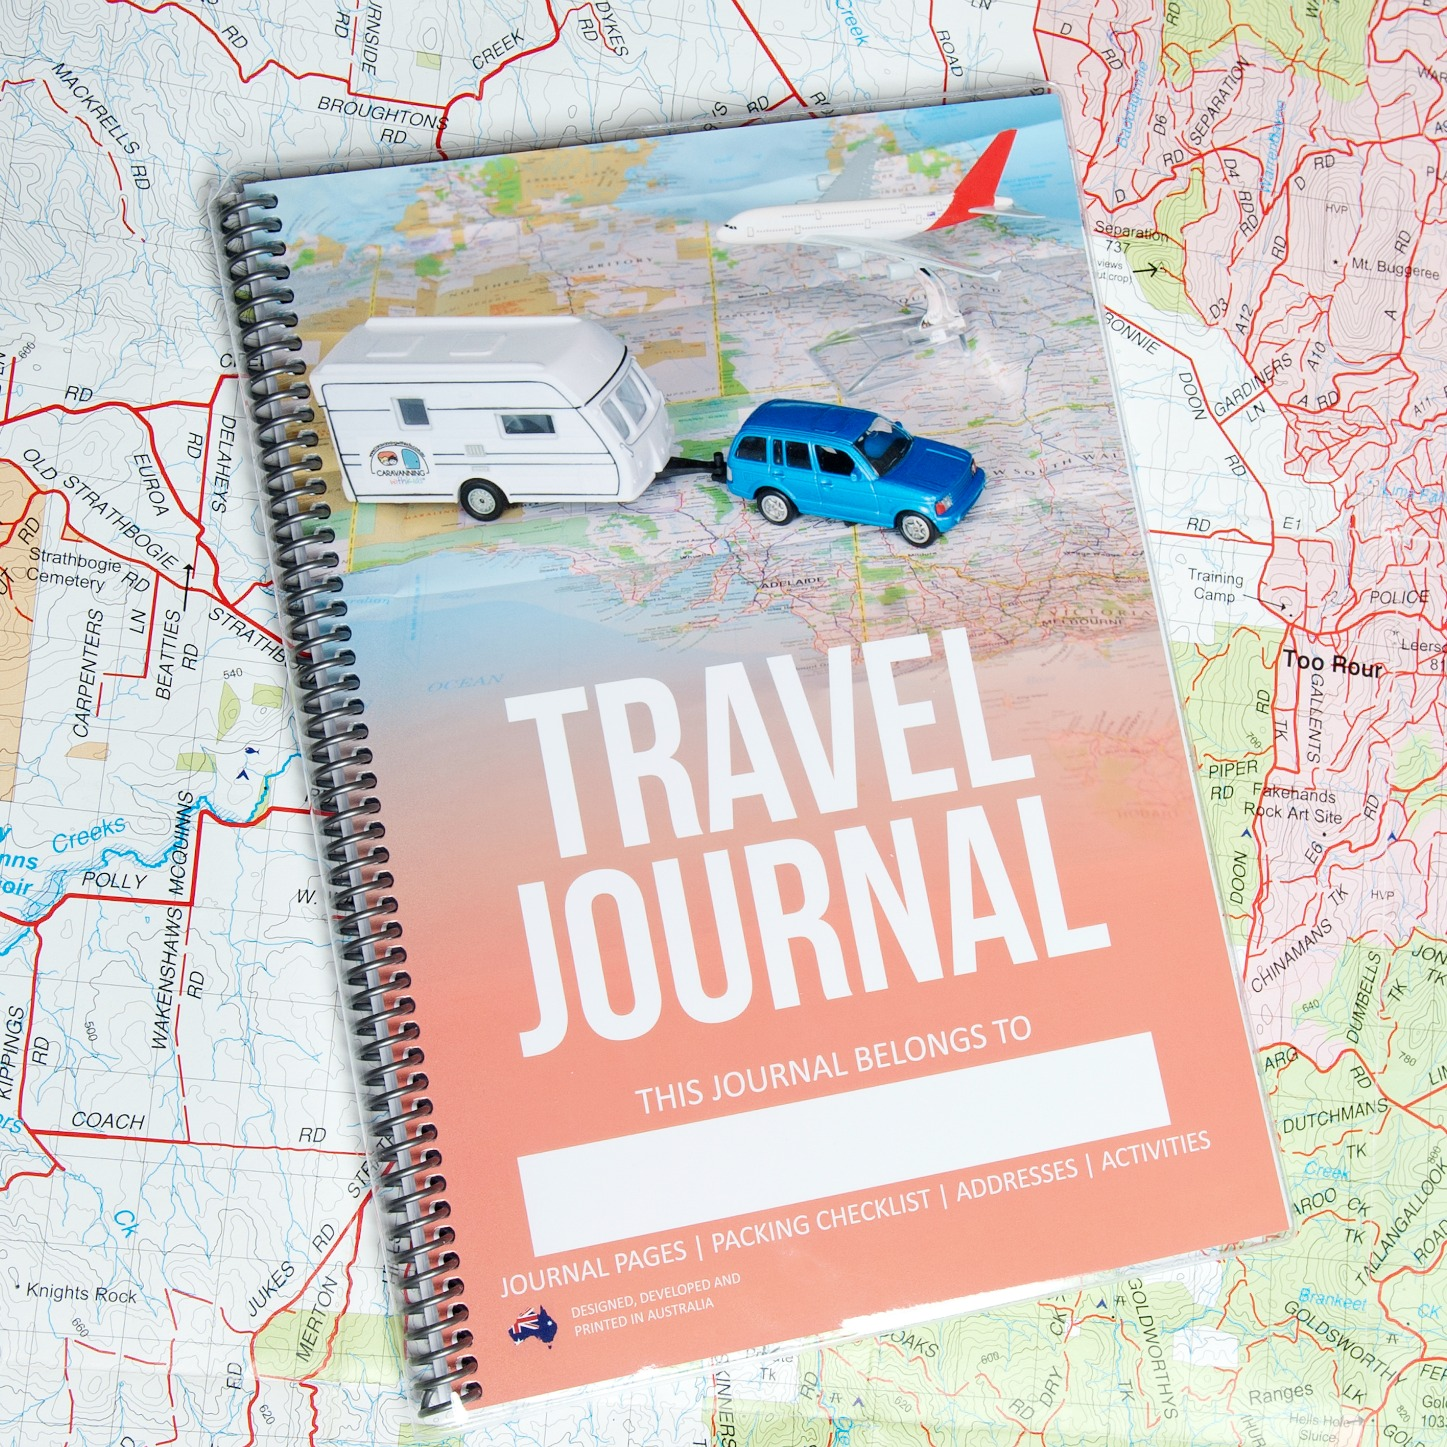 Travel-Journal-2016-Square.jpg